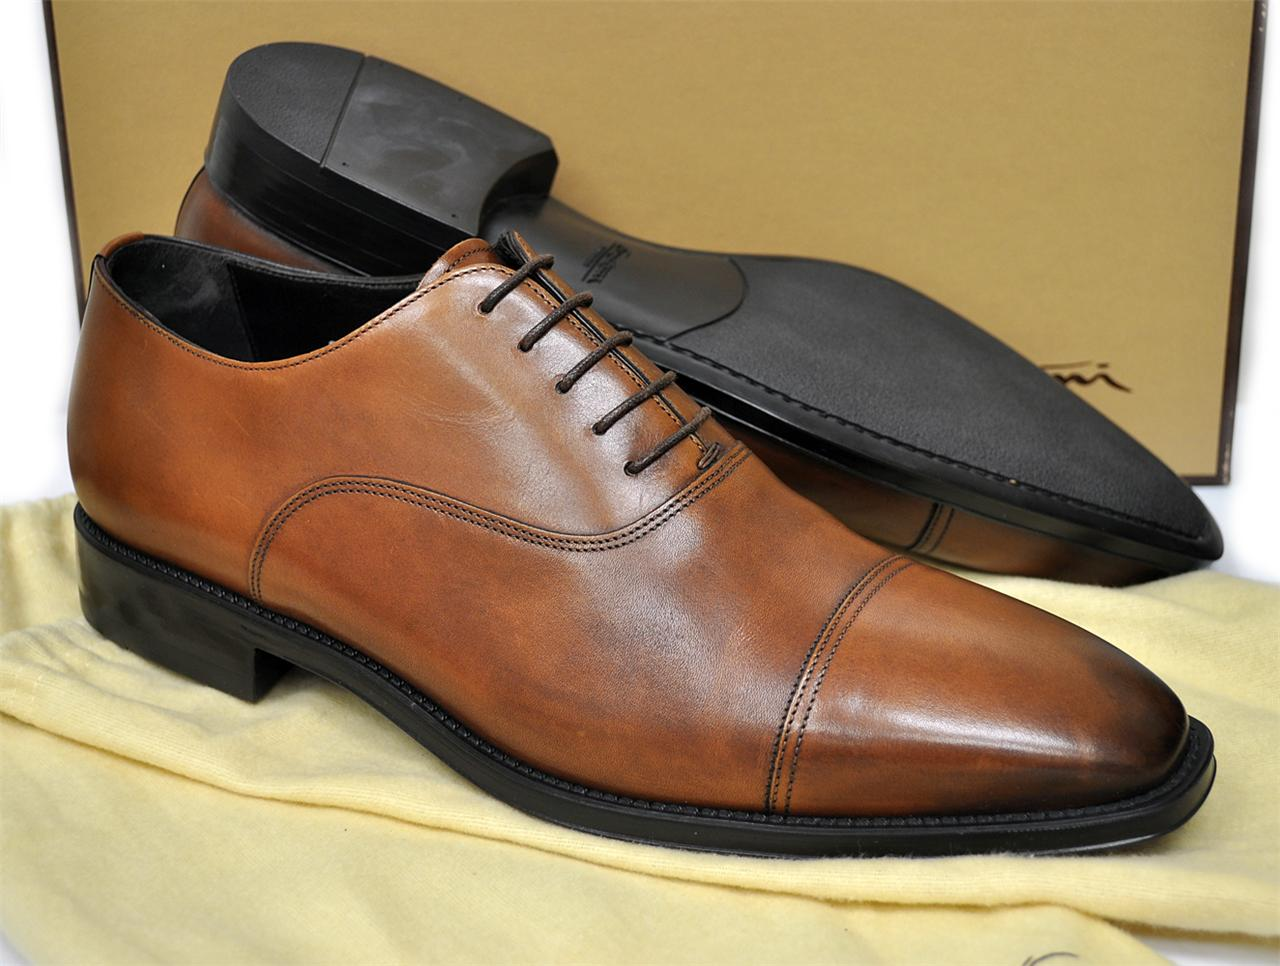 NEW Santoni Mens Shoes Handmade in Italy Jensen Cap Toe ...